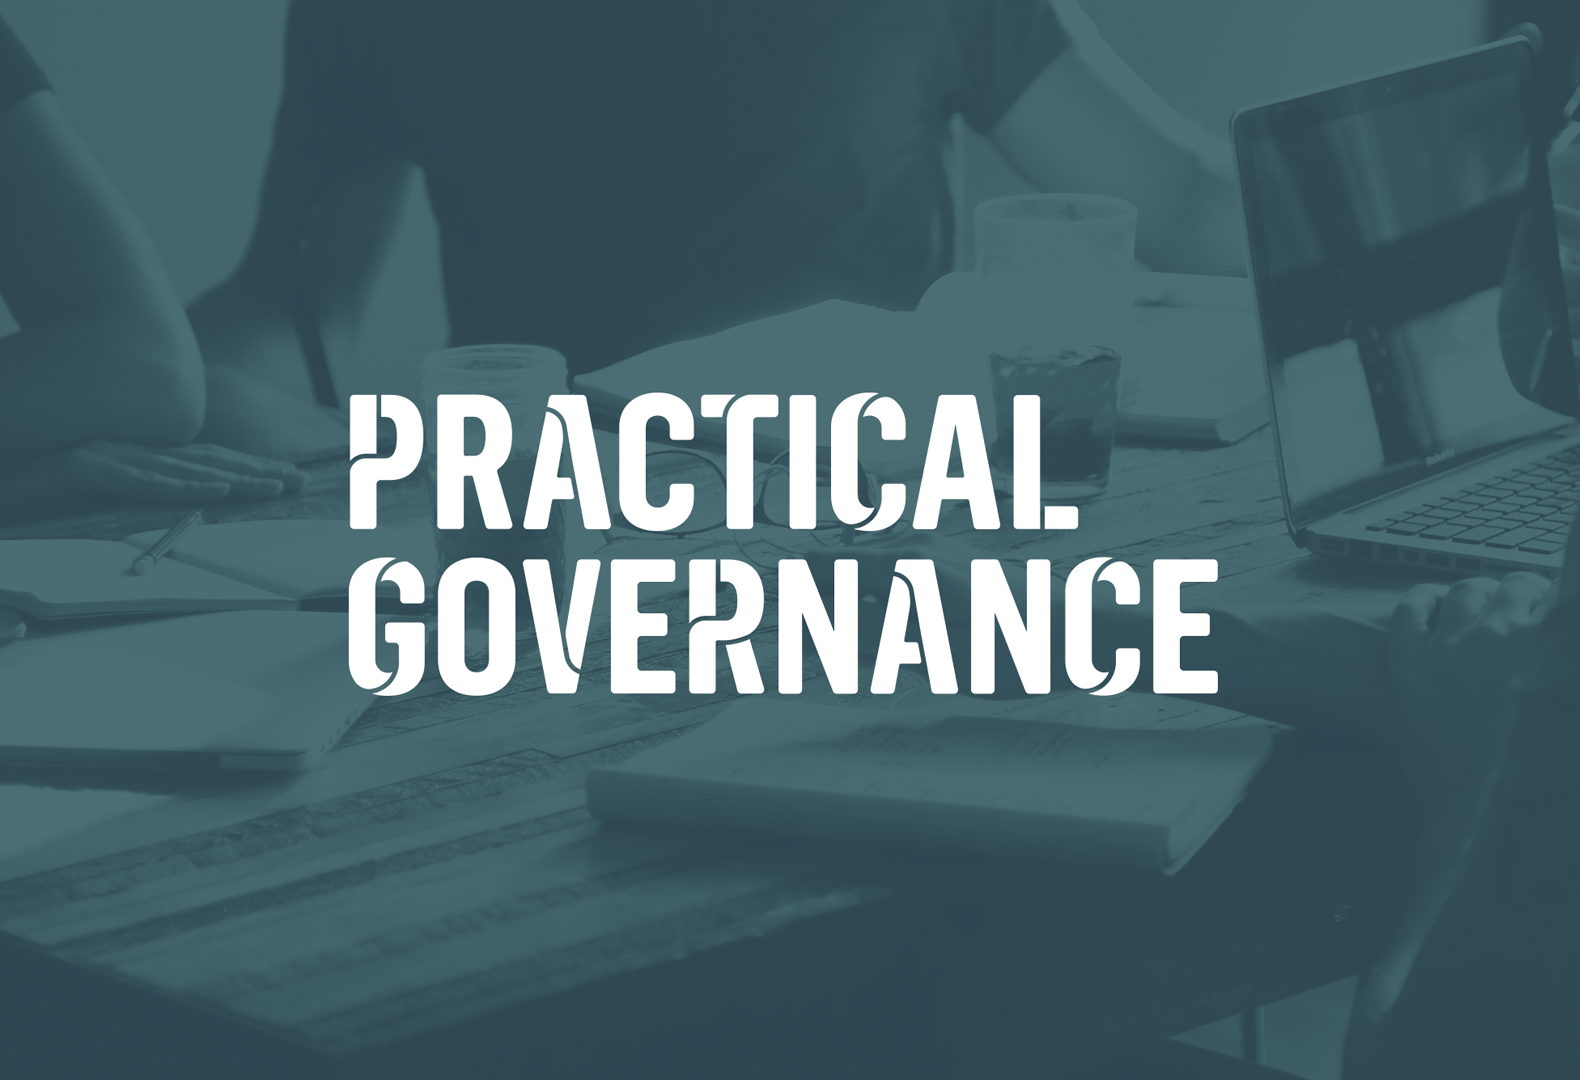 Practical Governance logotype.